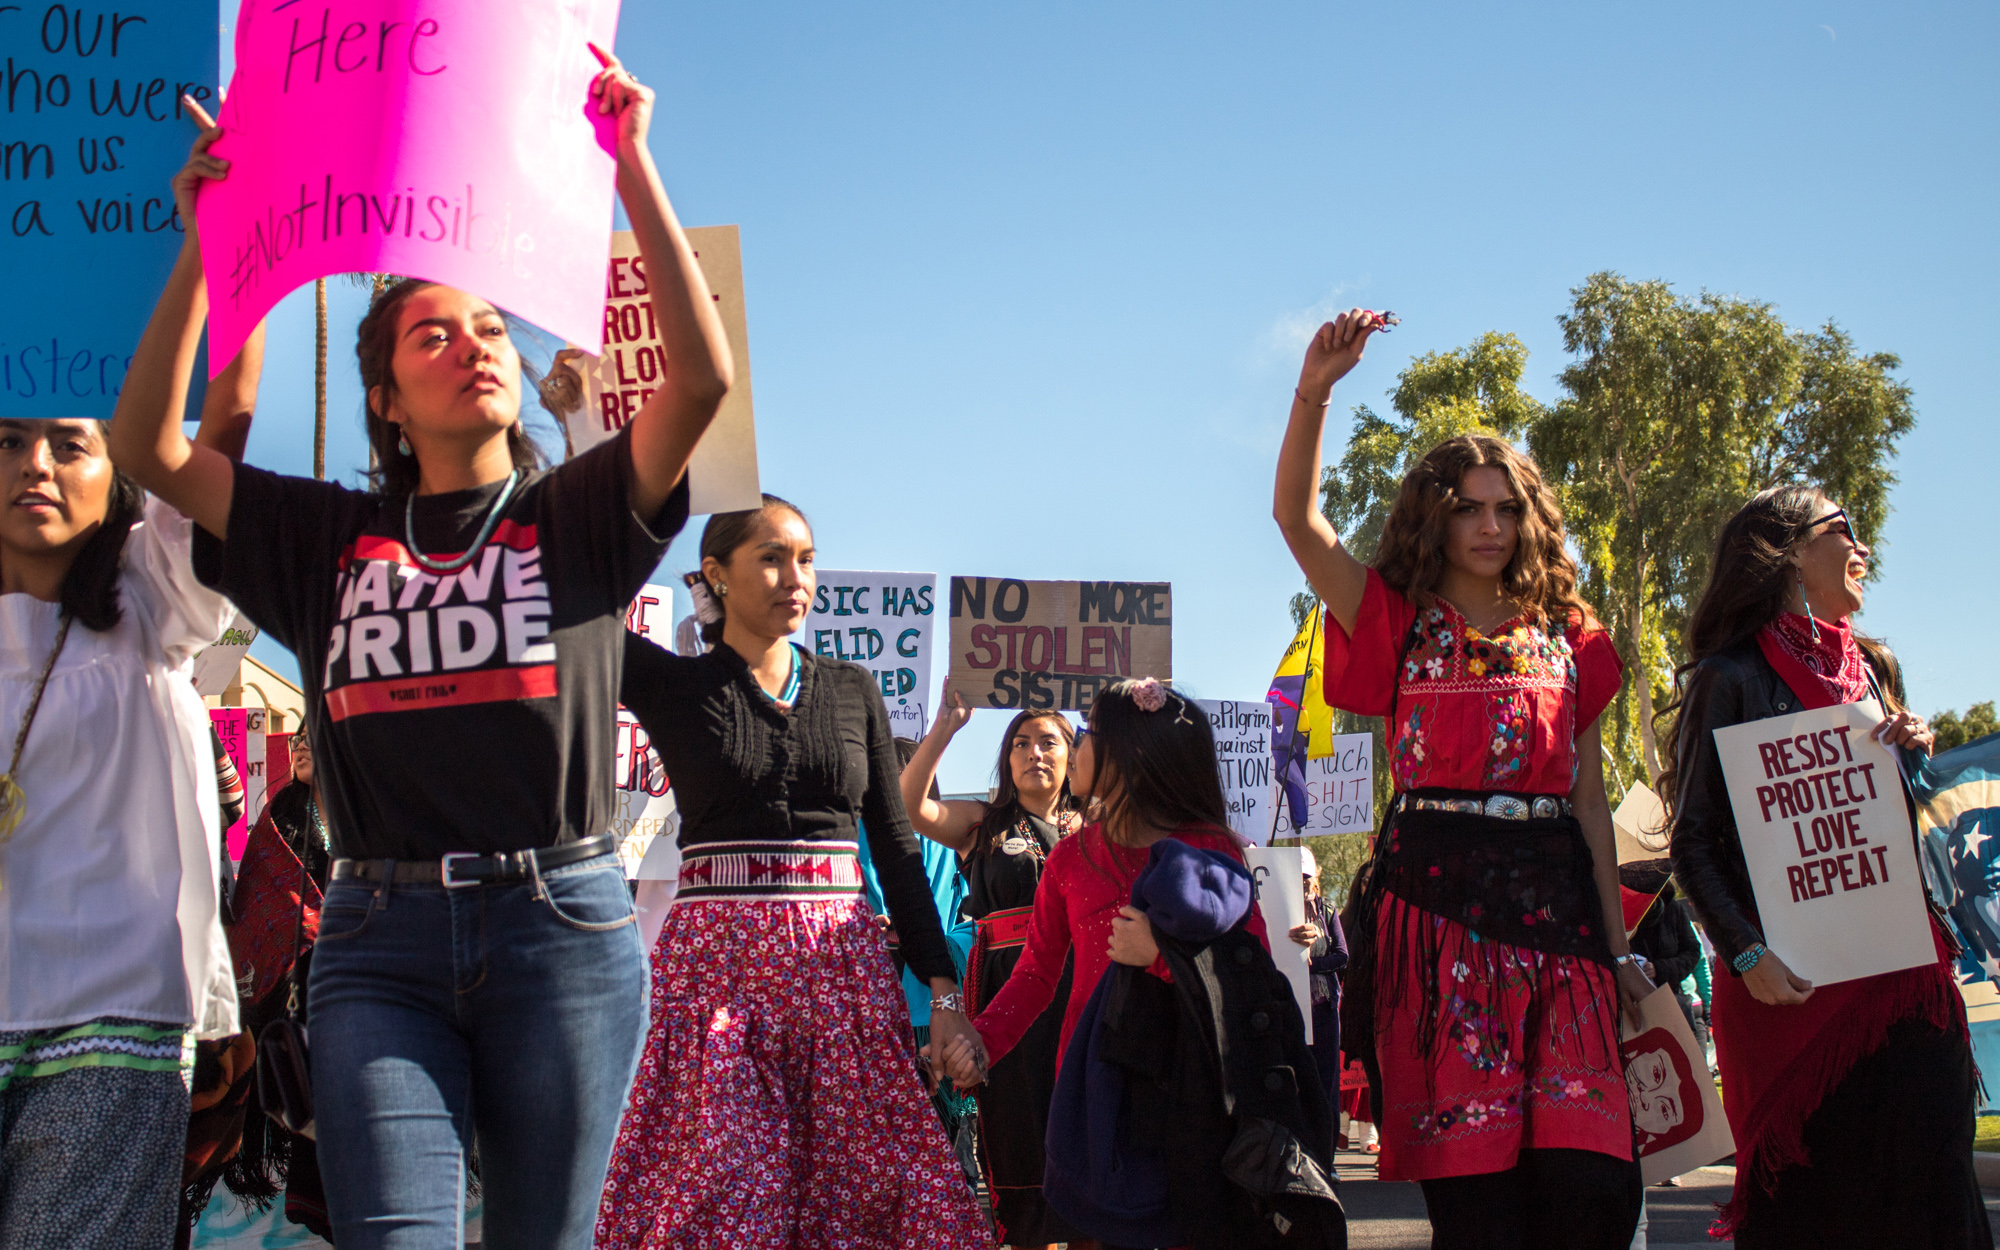 Arizona's 2018 Women's March highlights the high rates of